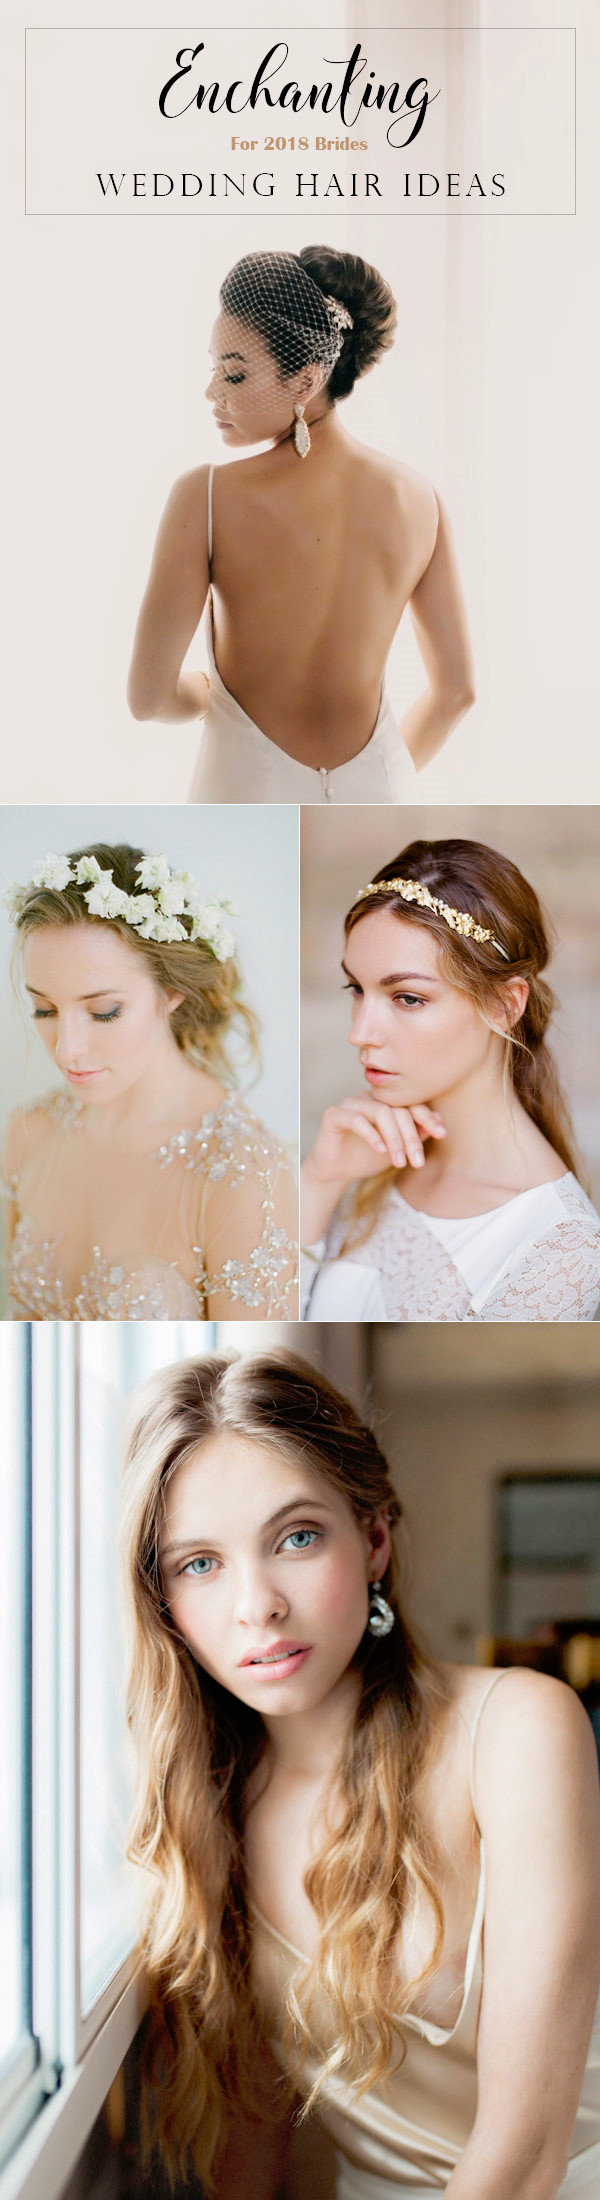 Enchanting Wedding Hair Trends 2018